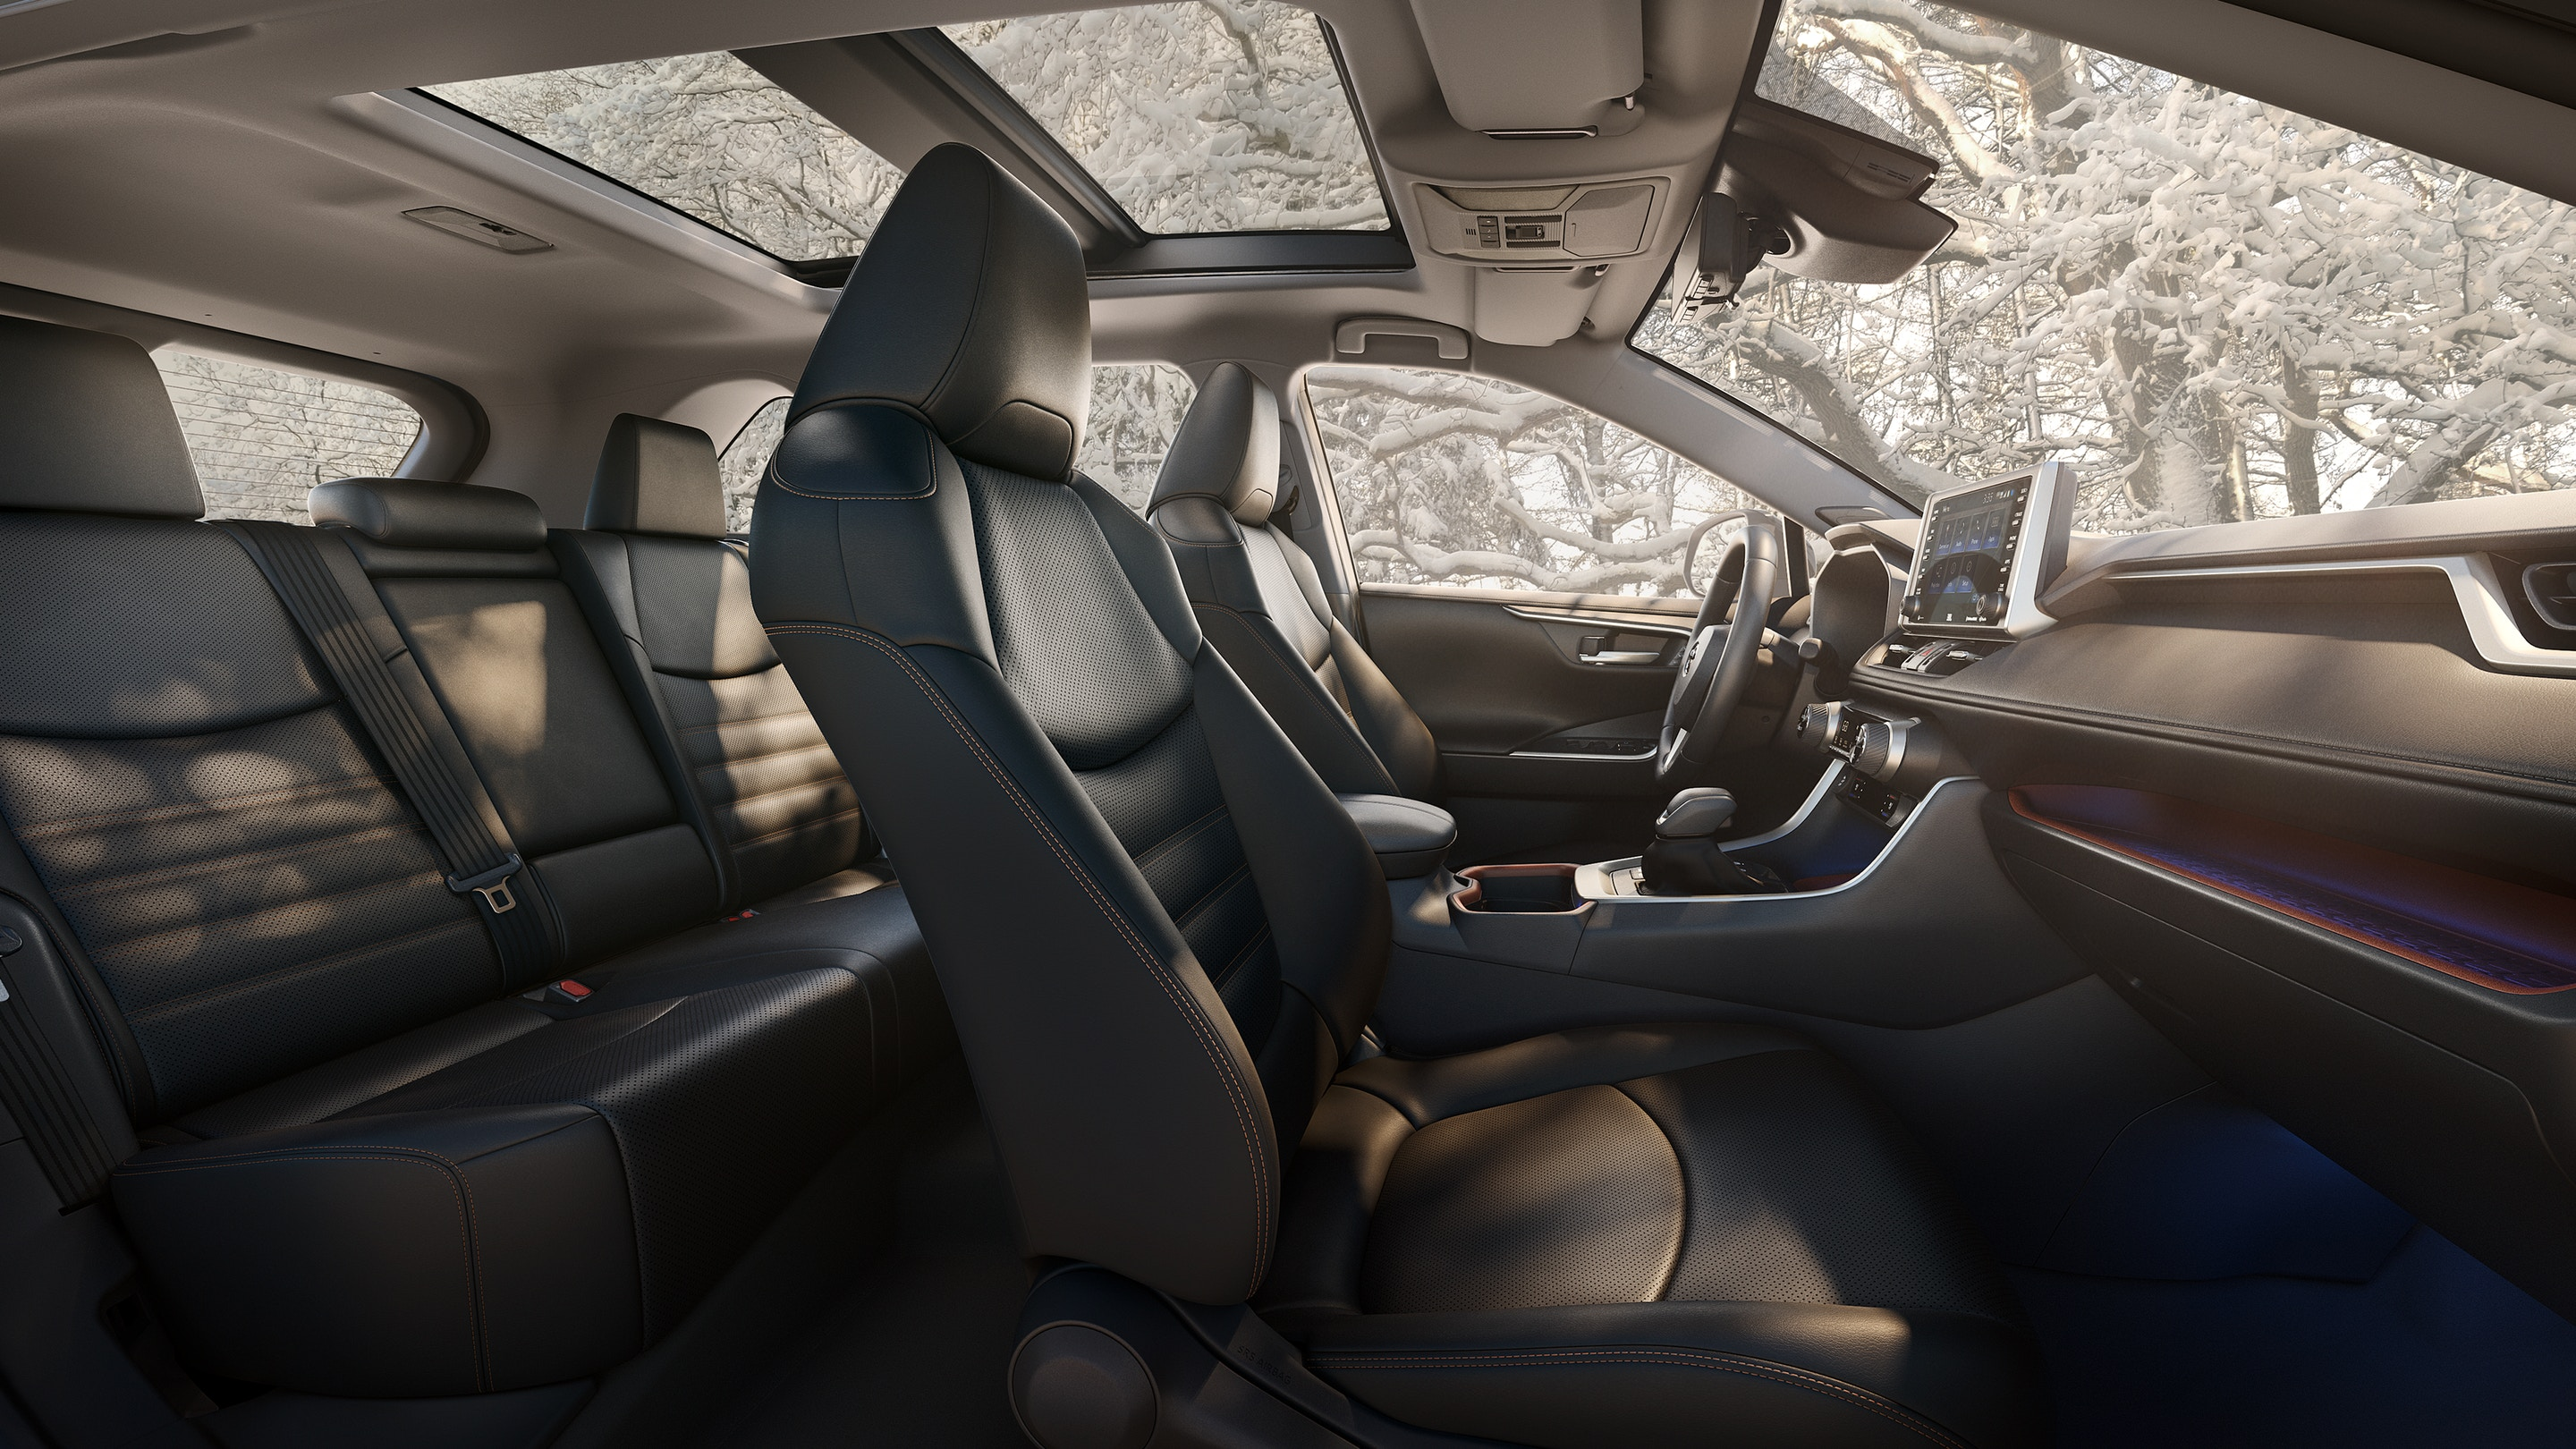 Spacious Cabin in the 2019 RAV4